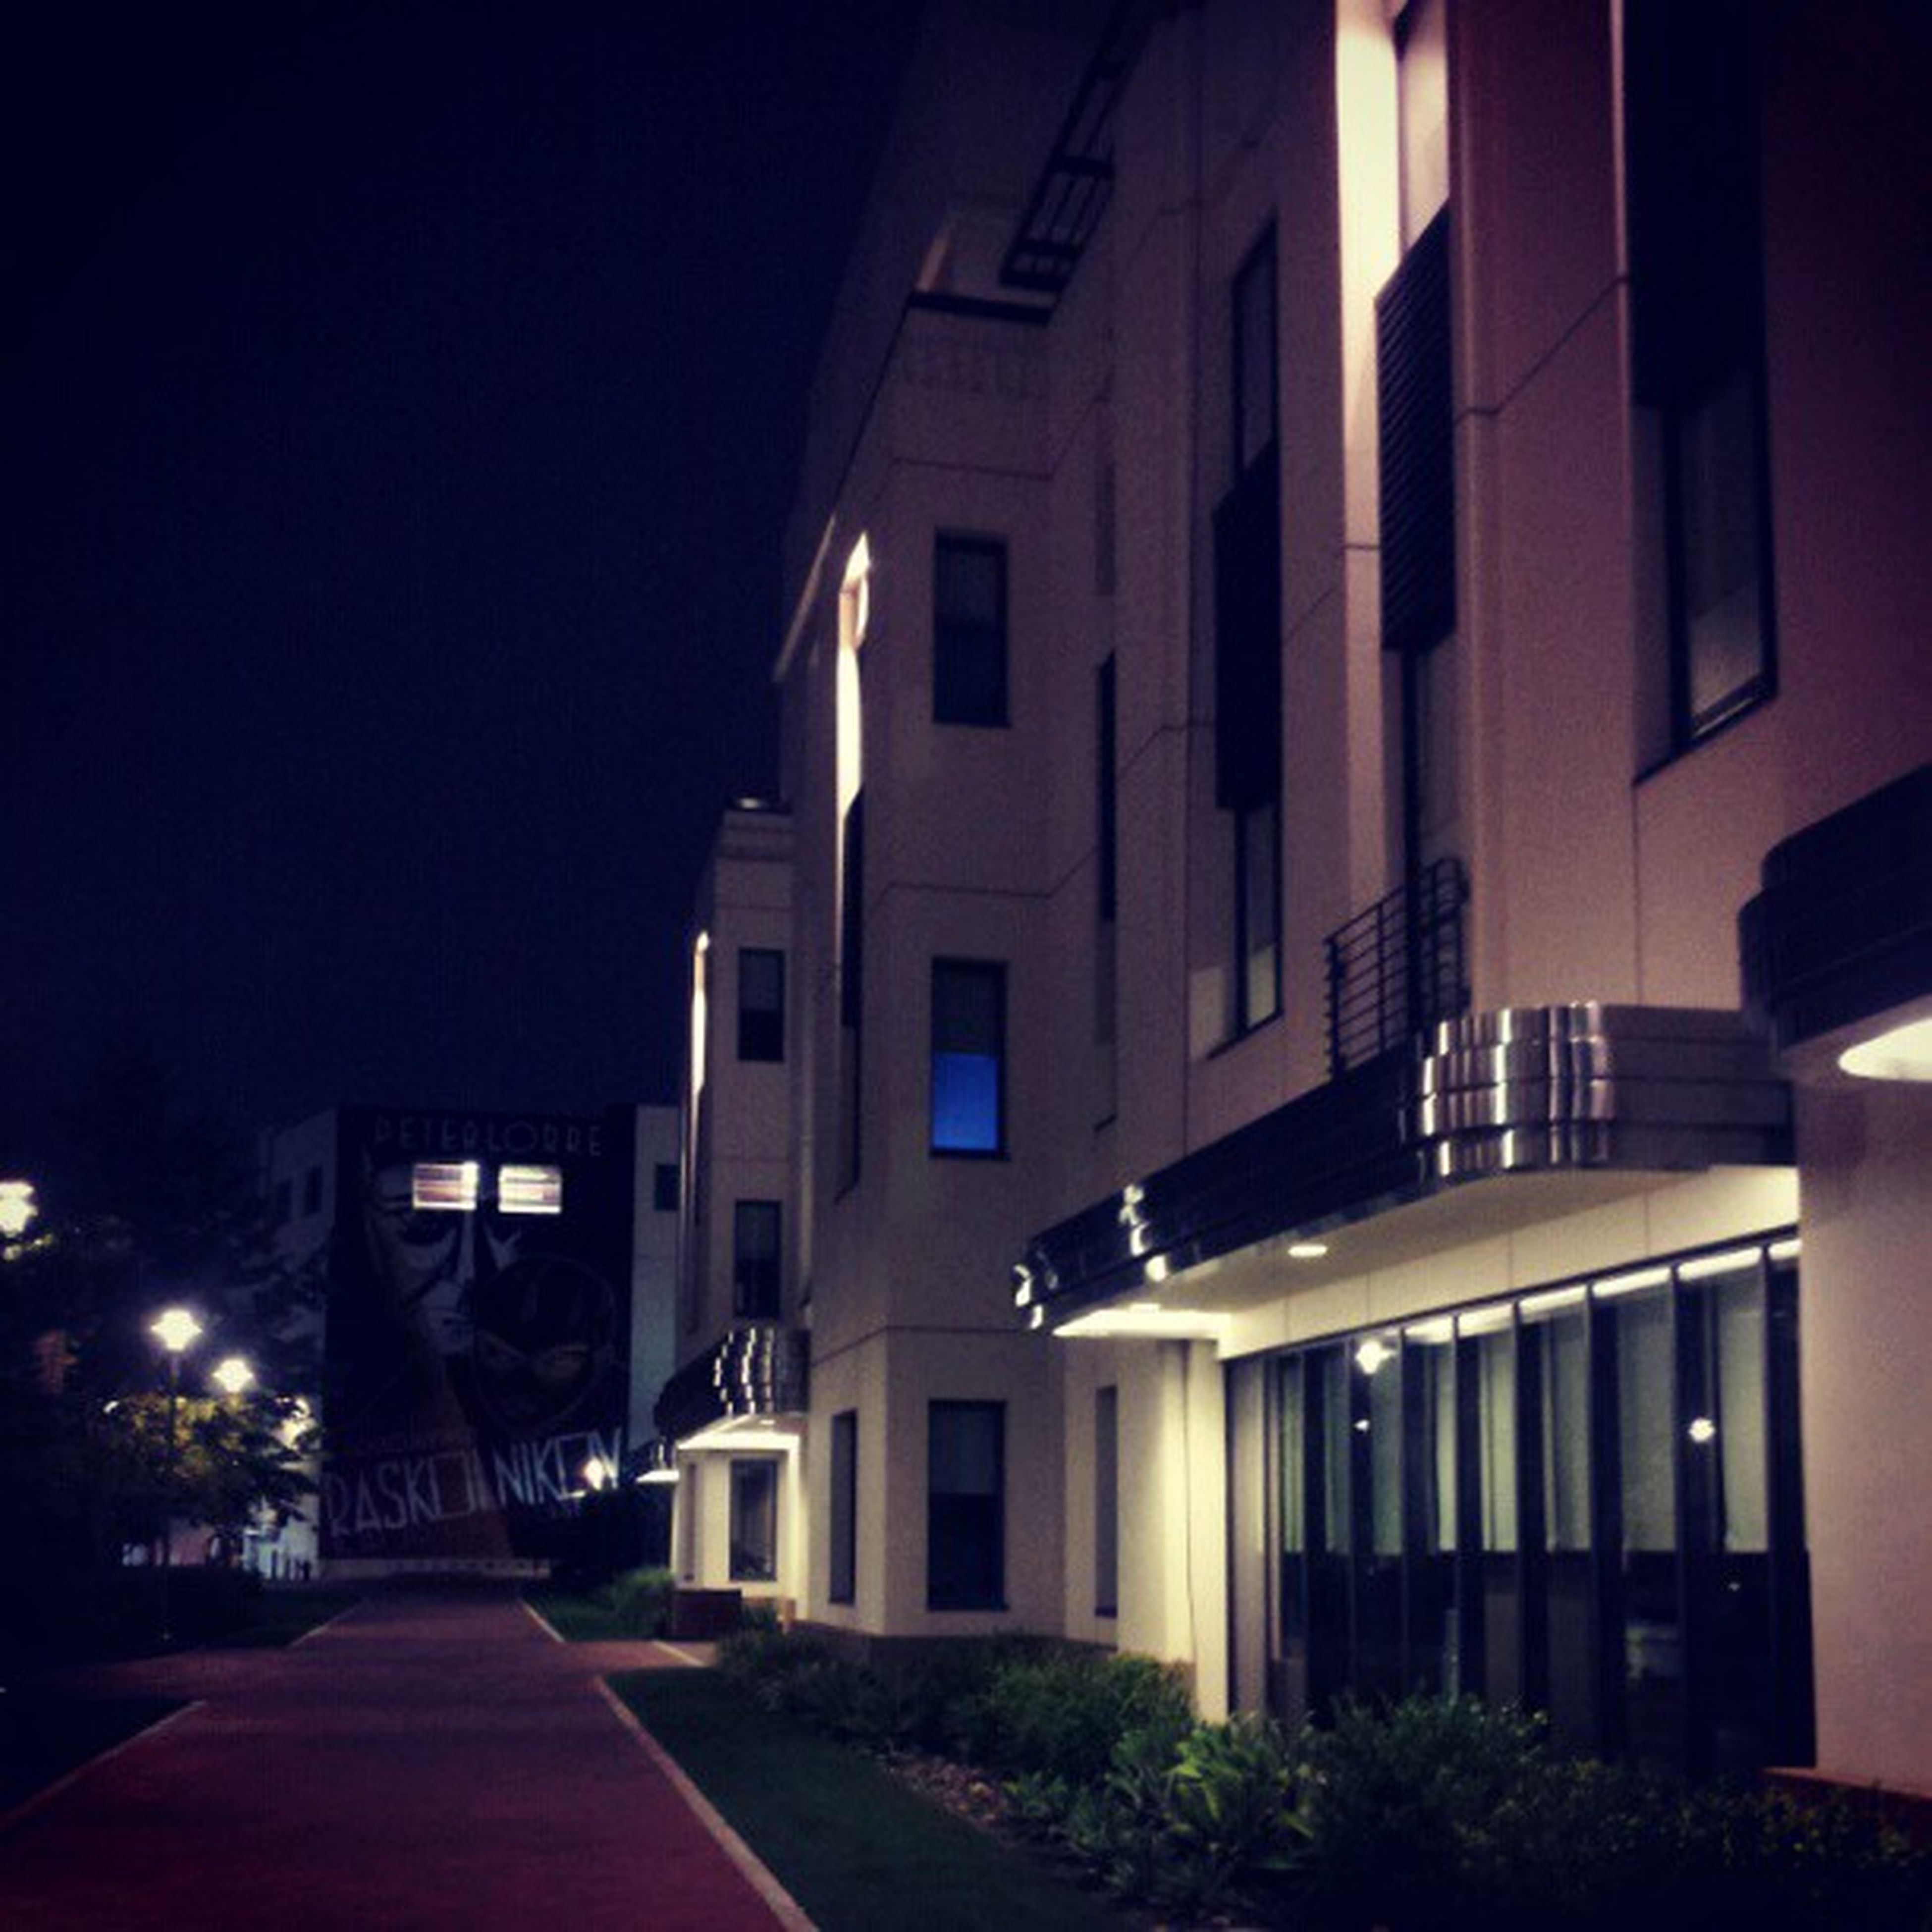 architecture, built structure, building exterior, night, illuminated, the way forward, city, street, building, residential building, residential structure, sky, diminishing perspective, street light, road, outdoors, no people, house, empty, long